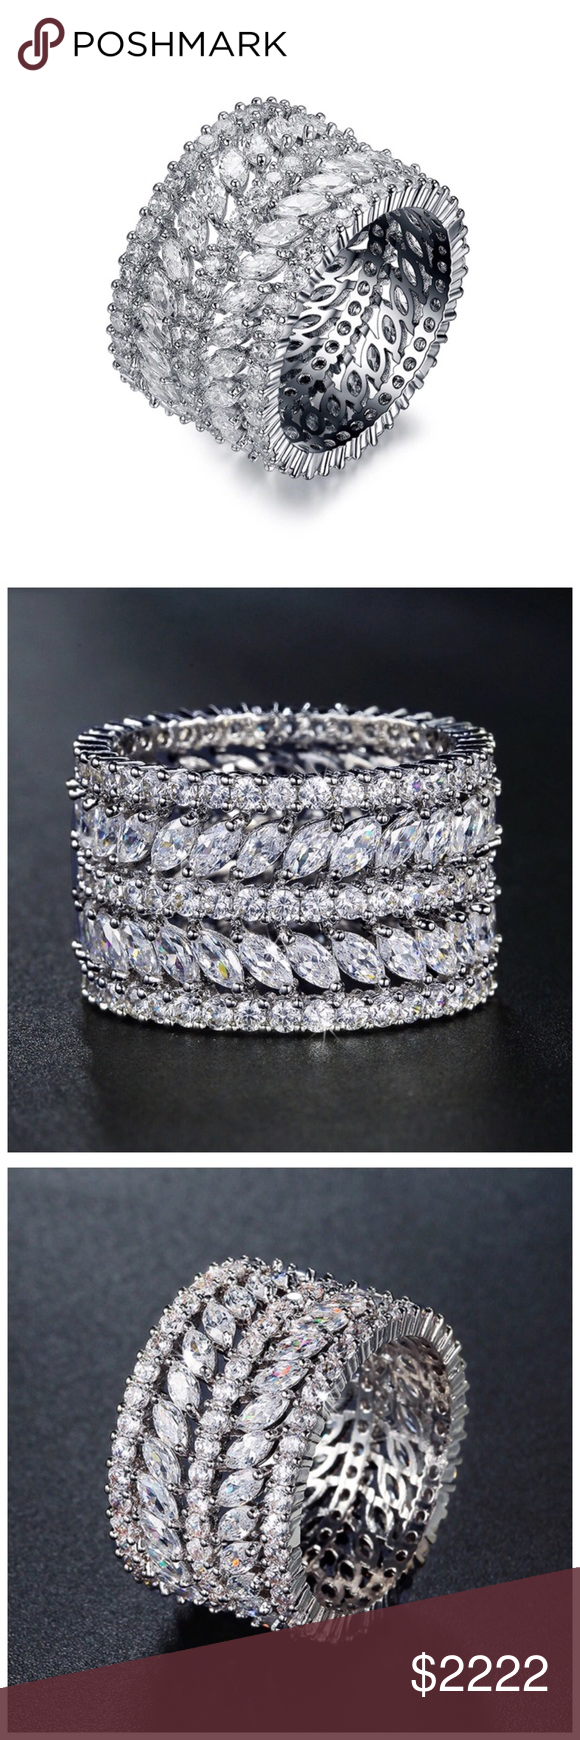 """🆕 Swarovski Crystals The Matrika Circle Ring ‼️ PRICE FIRM ‼️ 10% DISCOUNT ON 2 OR MORE ITEMS FROM MY CLOSET ‼️   Made Using Swarovski Crystals Retail $96  To say that this is a spectacular ring would be an understatement. Beautifully & skillfully handcrafted using the finest Swarovski crystals with a 14K white gold overlay. Band is approximately .4"""". Comes with a beautiful gift box. Jewelry Rings"""